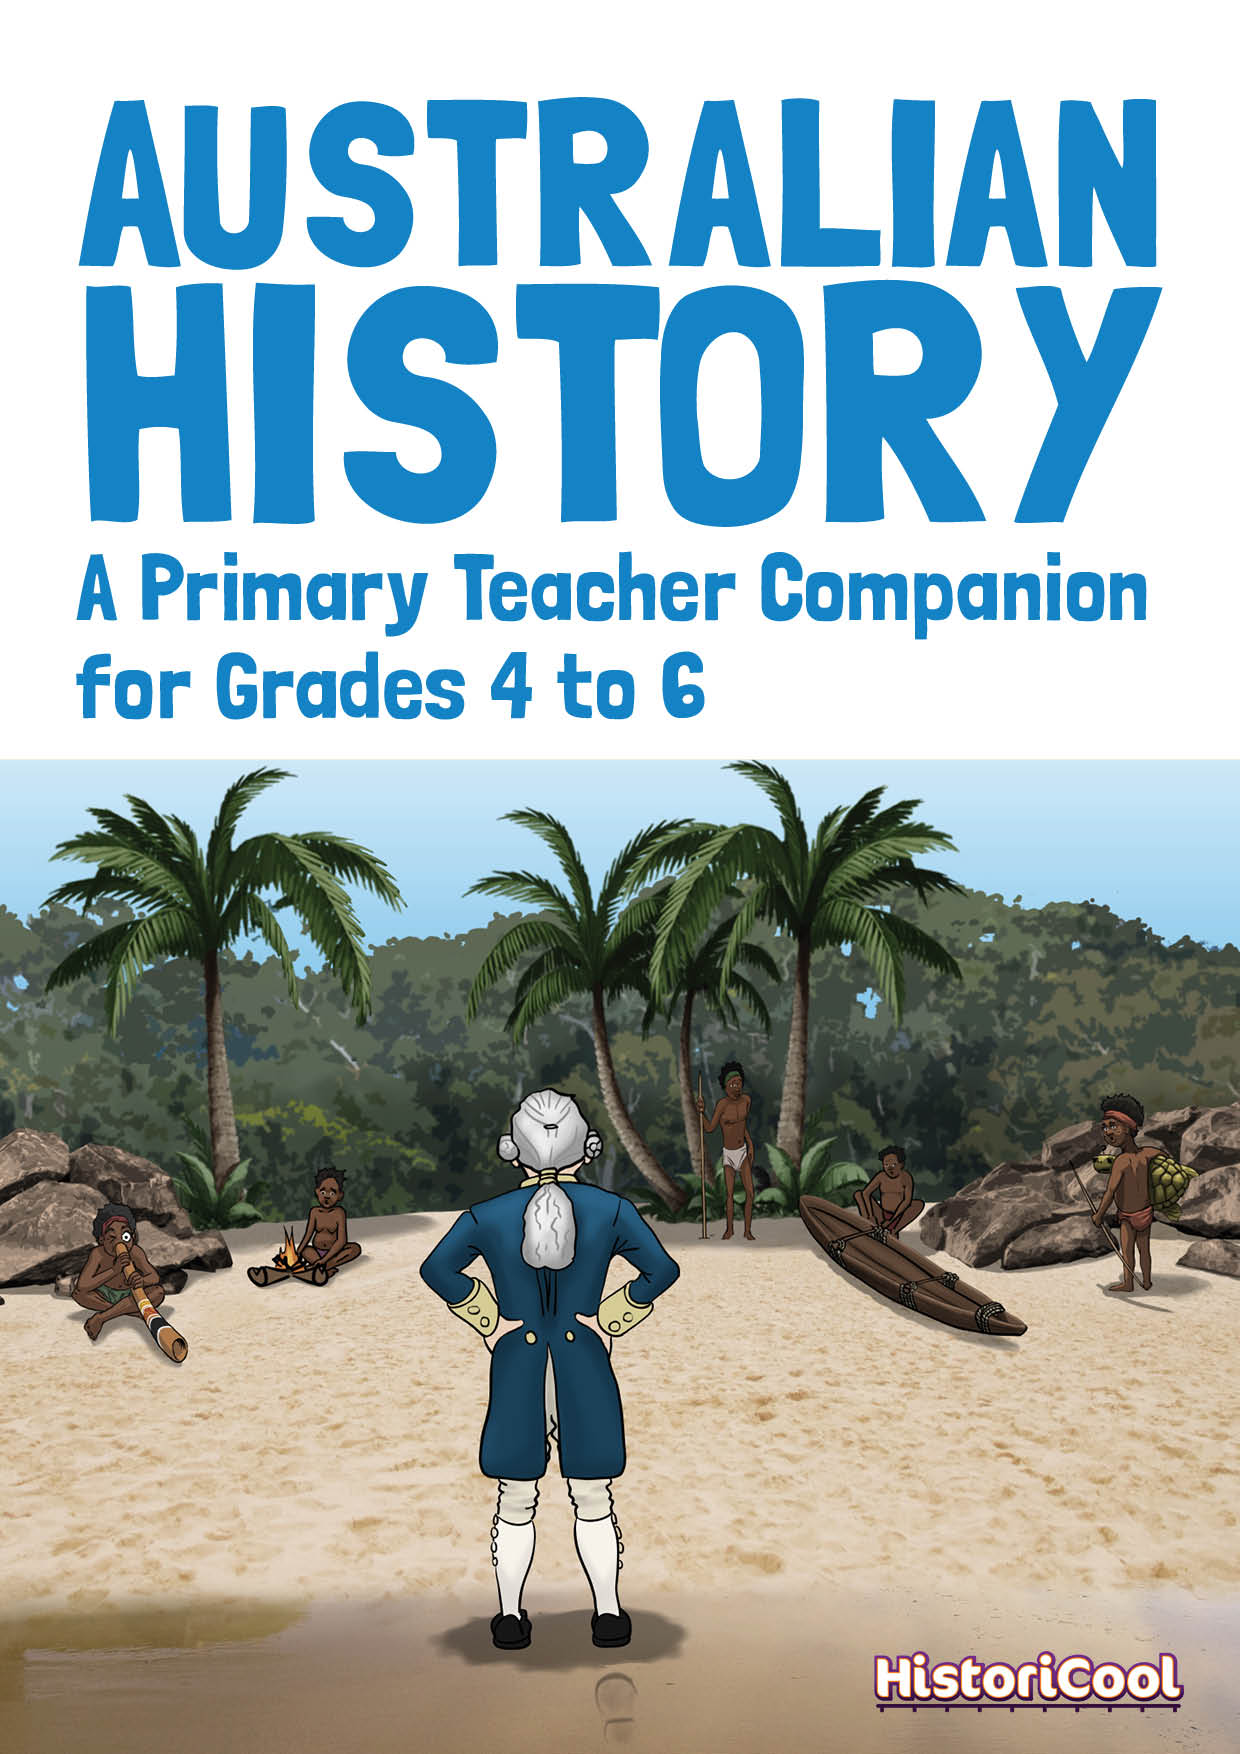 Have you seen our teacher resource book?